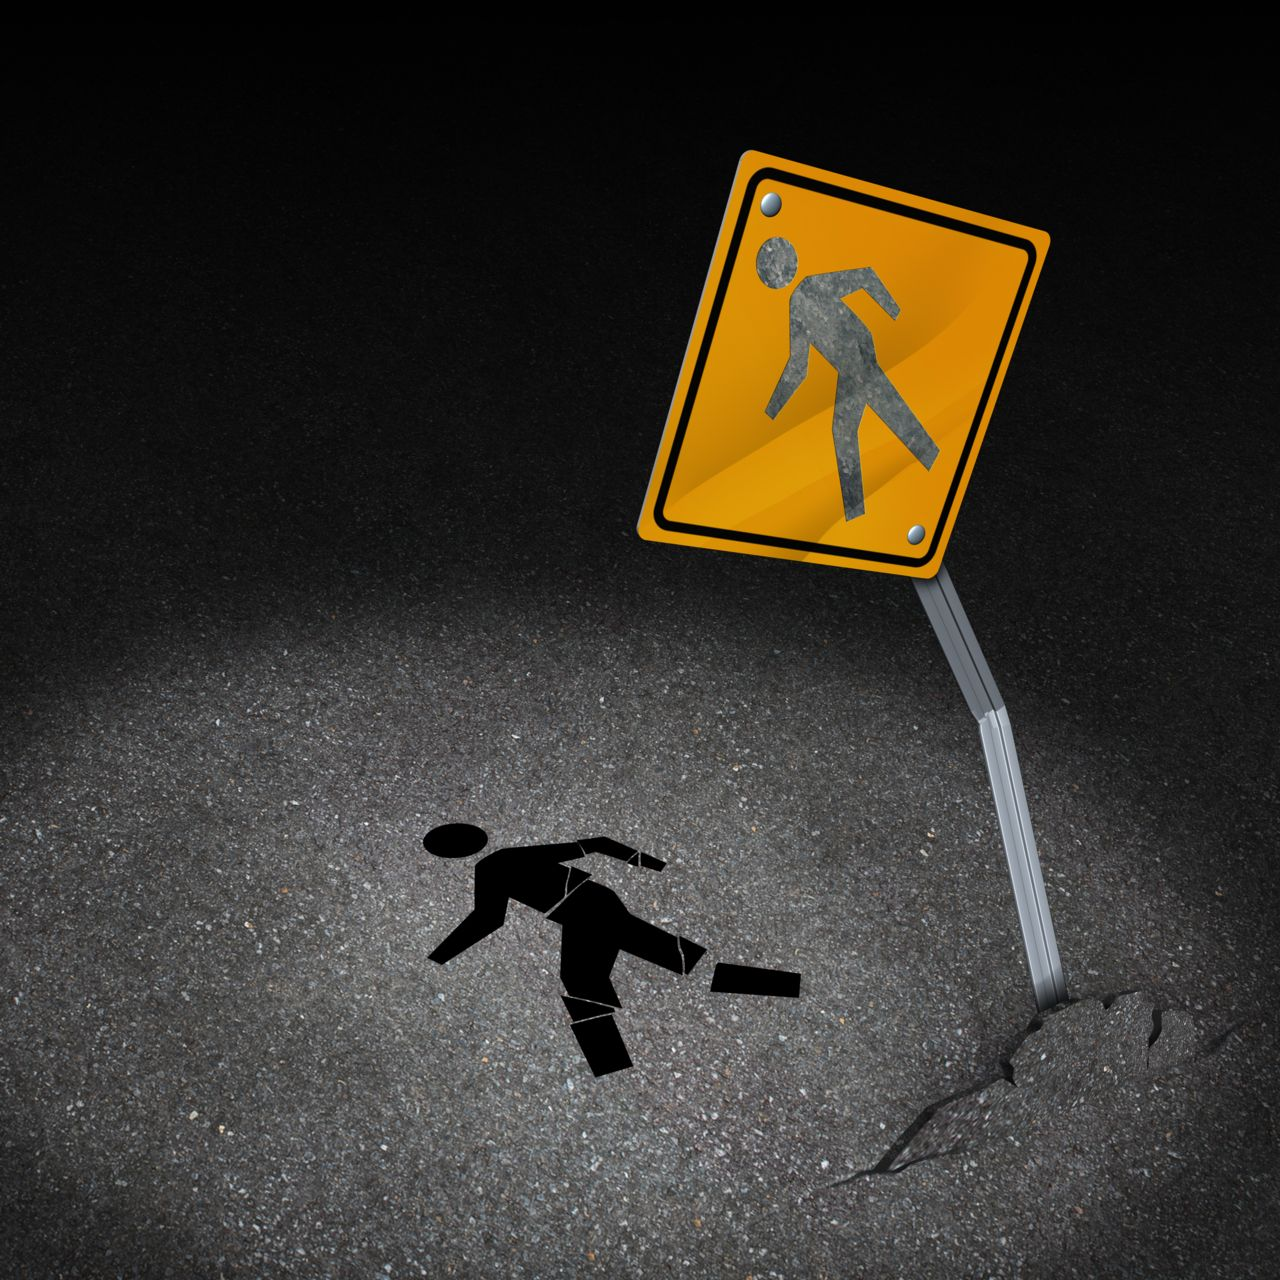 Pedestrian Caution Sign at Night